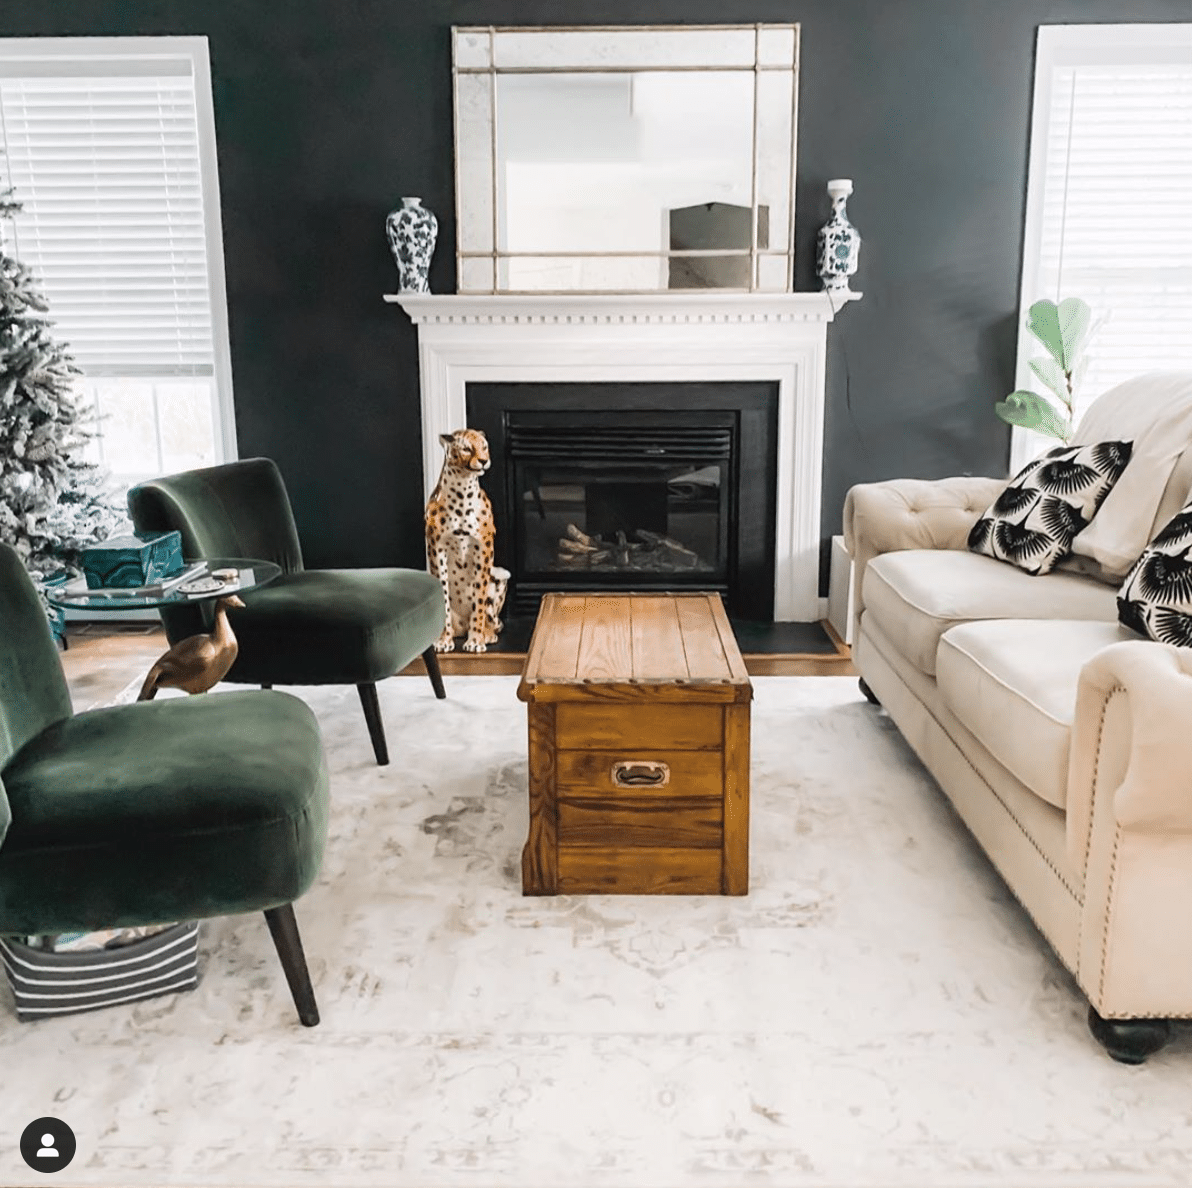 Boutique Rugs Review 2021: Are Boutique Rugs.com a good deal?